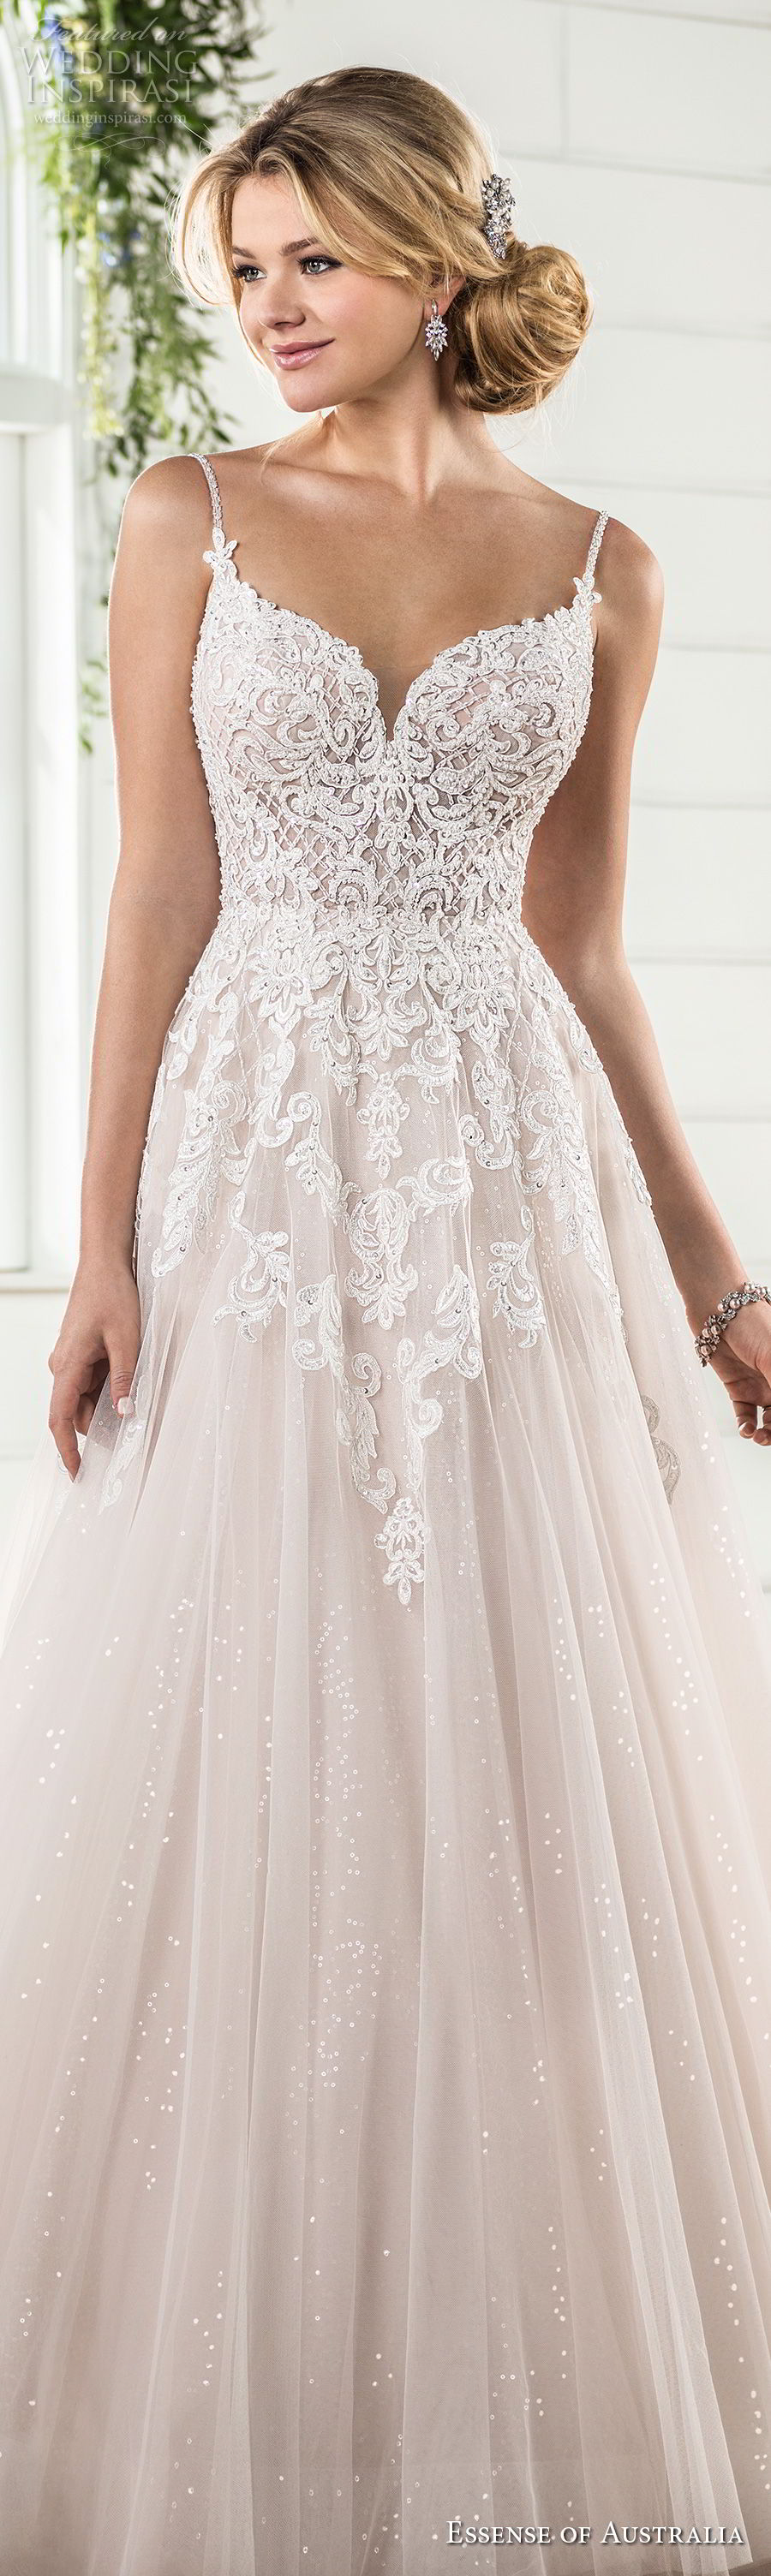 Essense Of Australia Fall 2017 Wedding Dresses Wedding Inspirasi,Wedding Dress Washington Dc